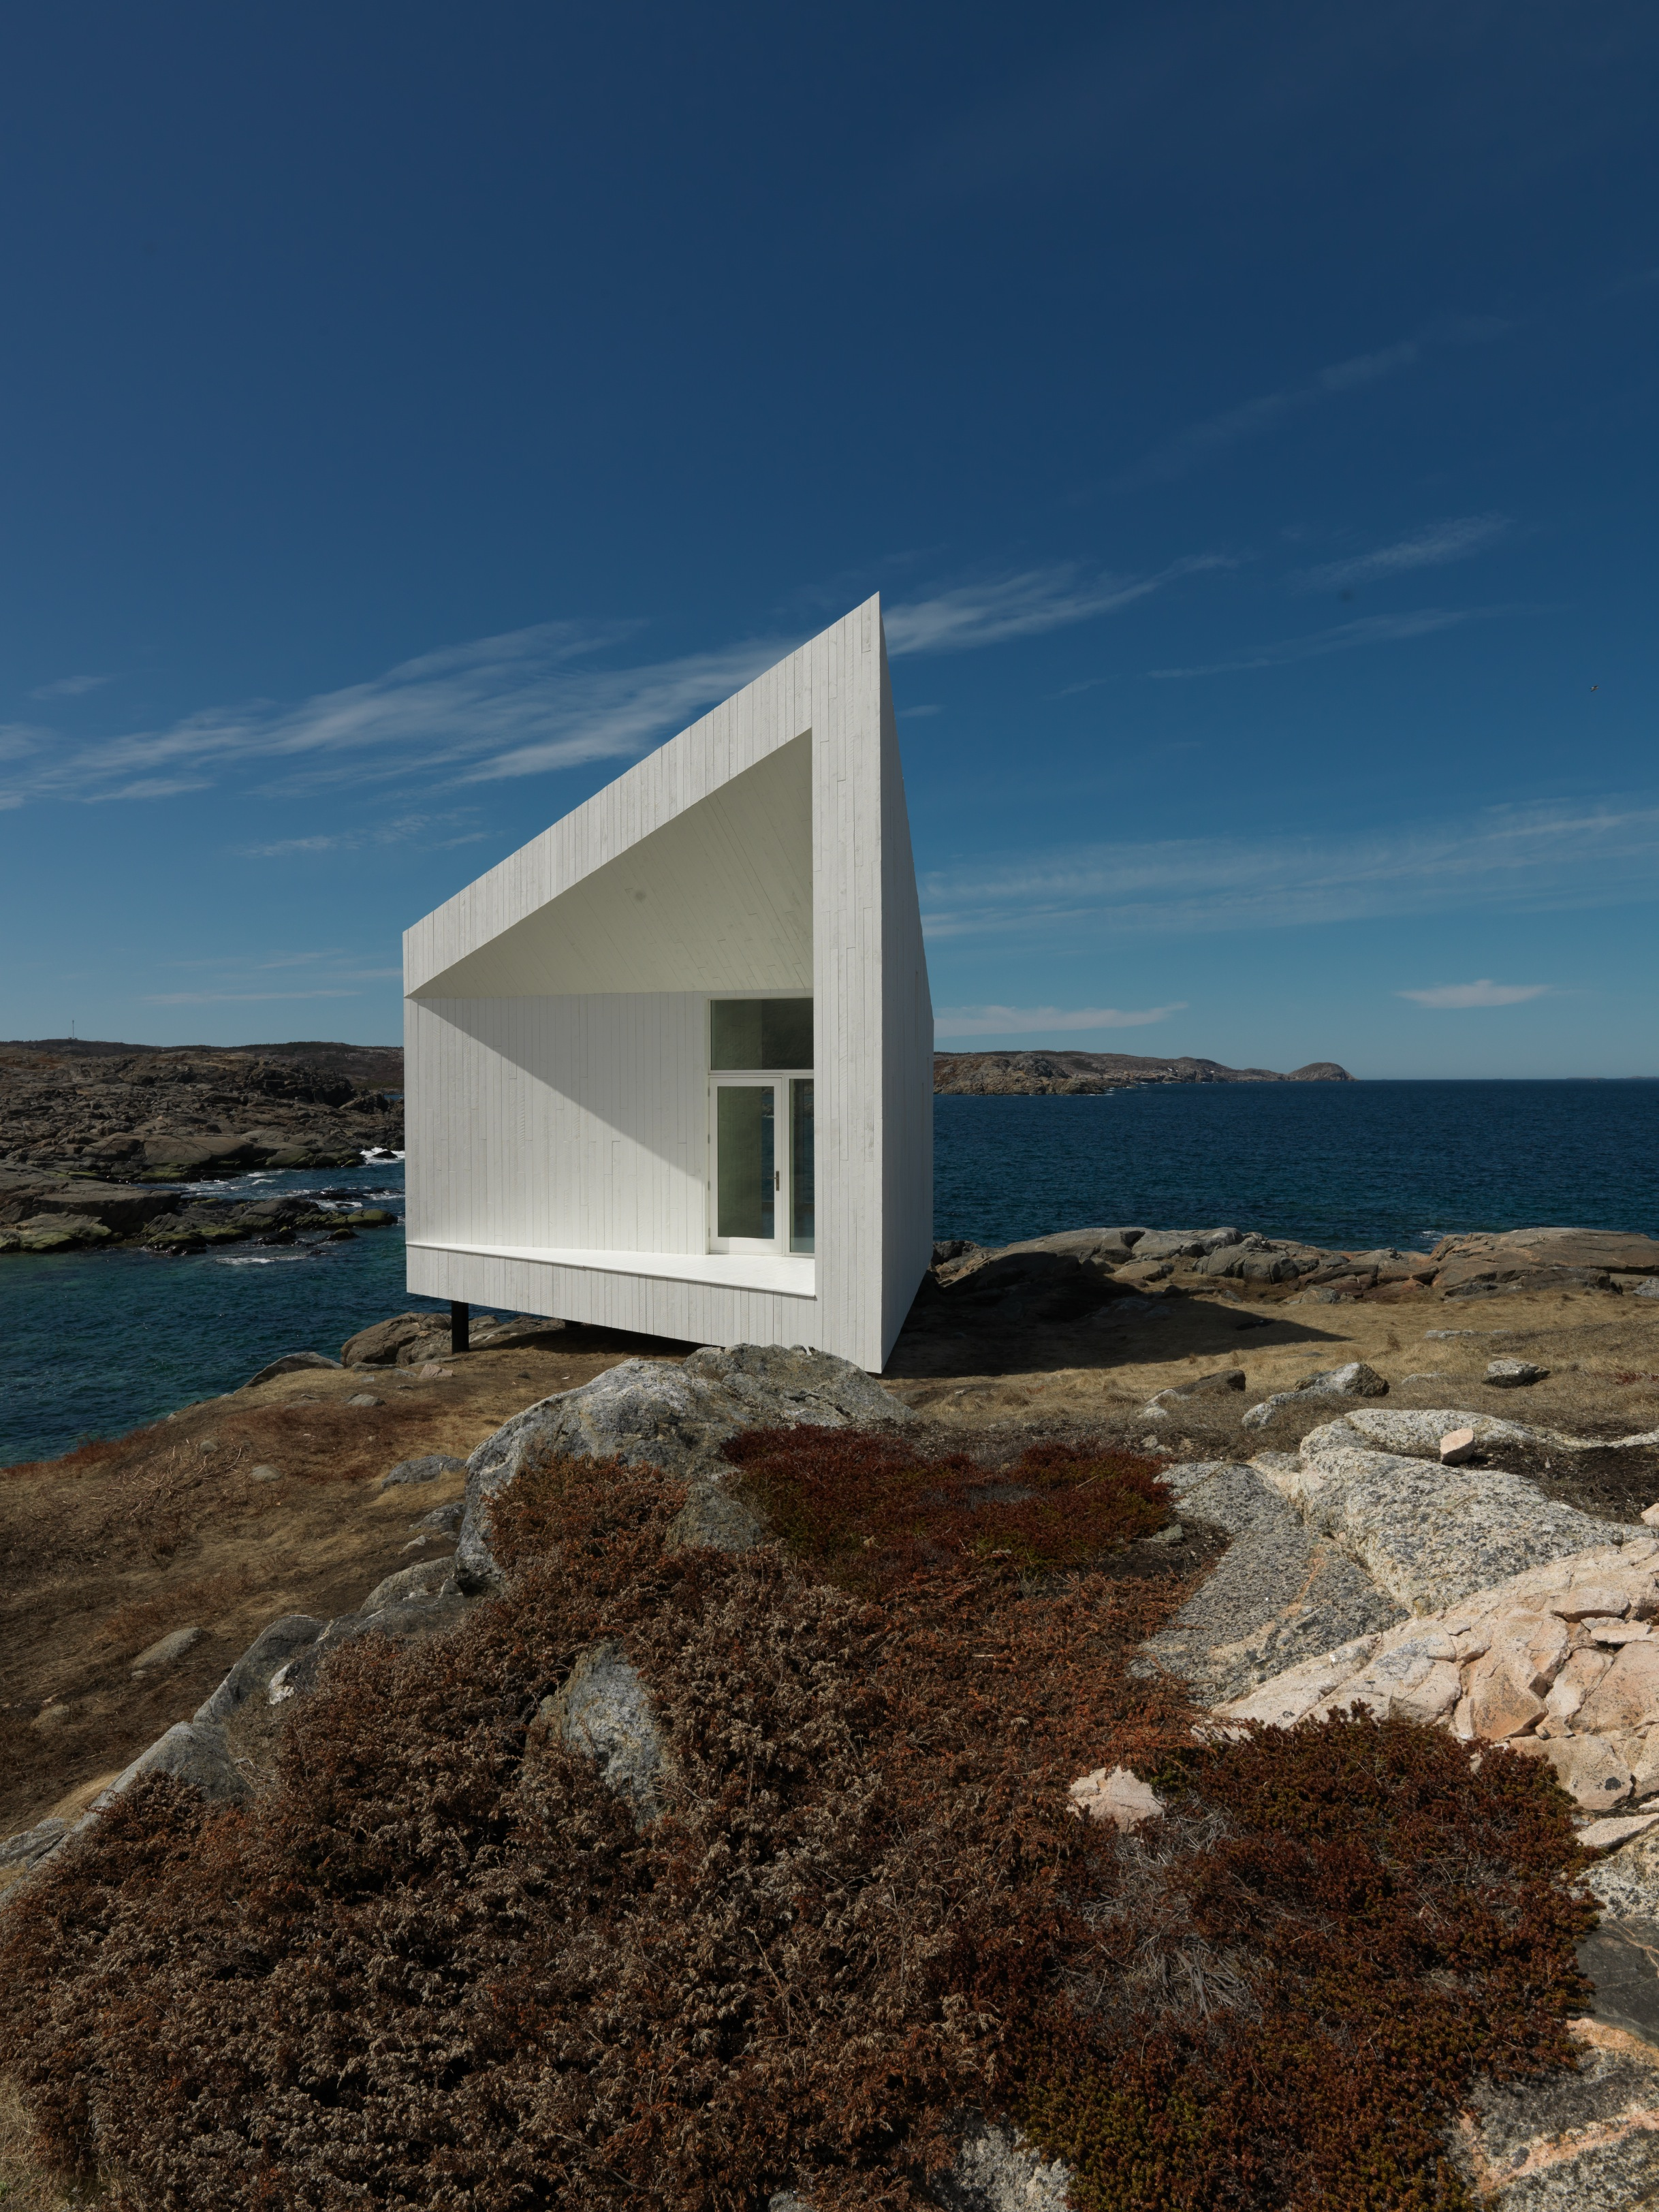 Strange et familiar : architecture on Fogo Island